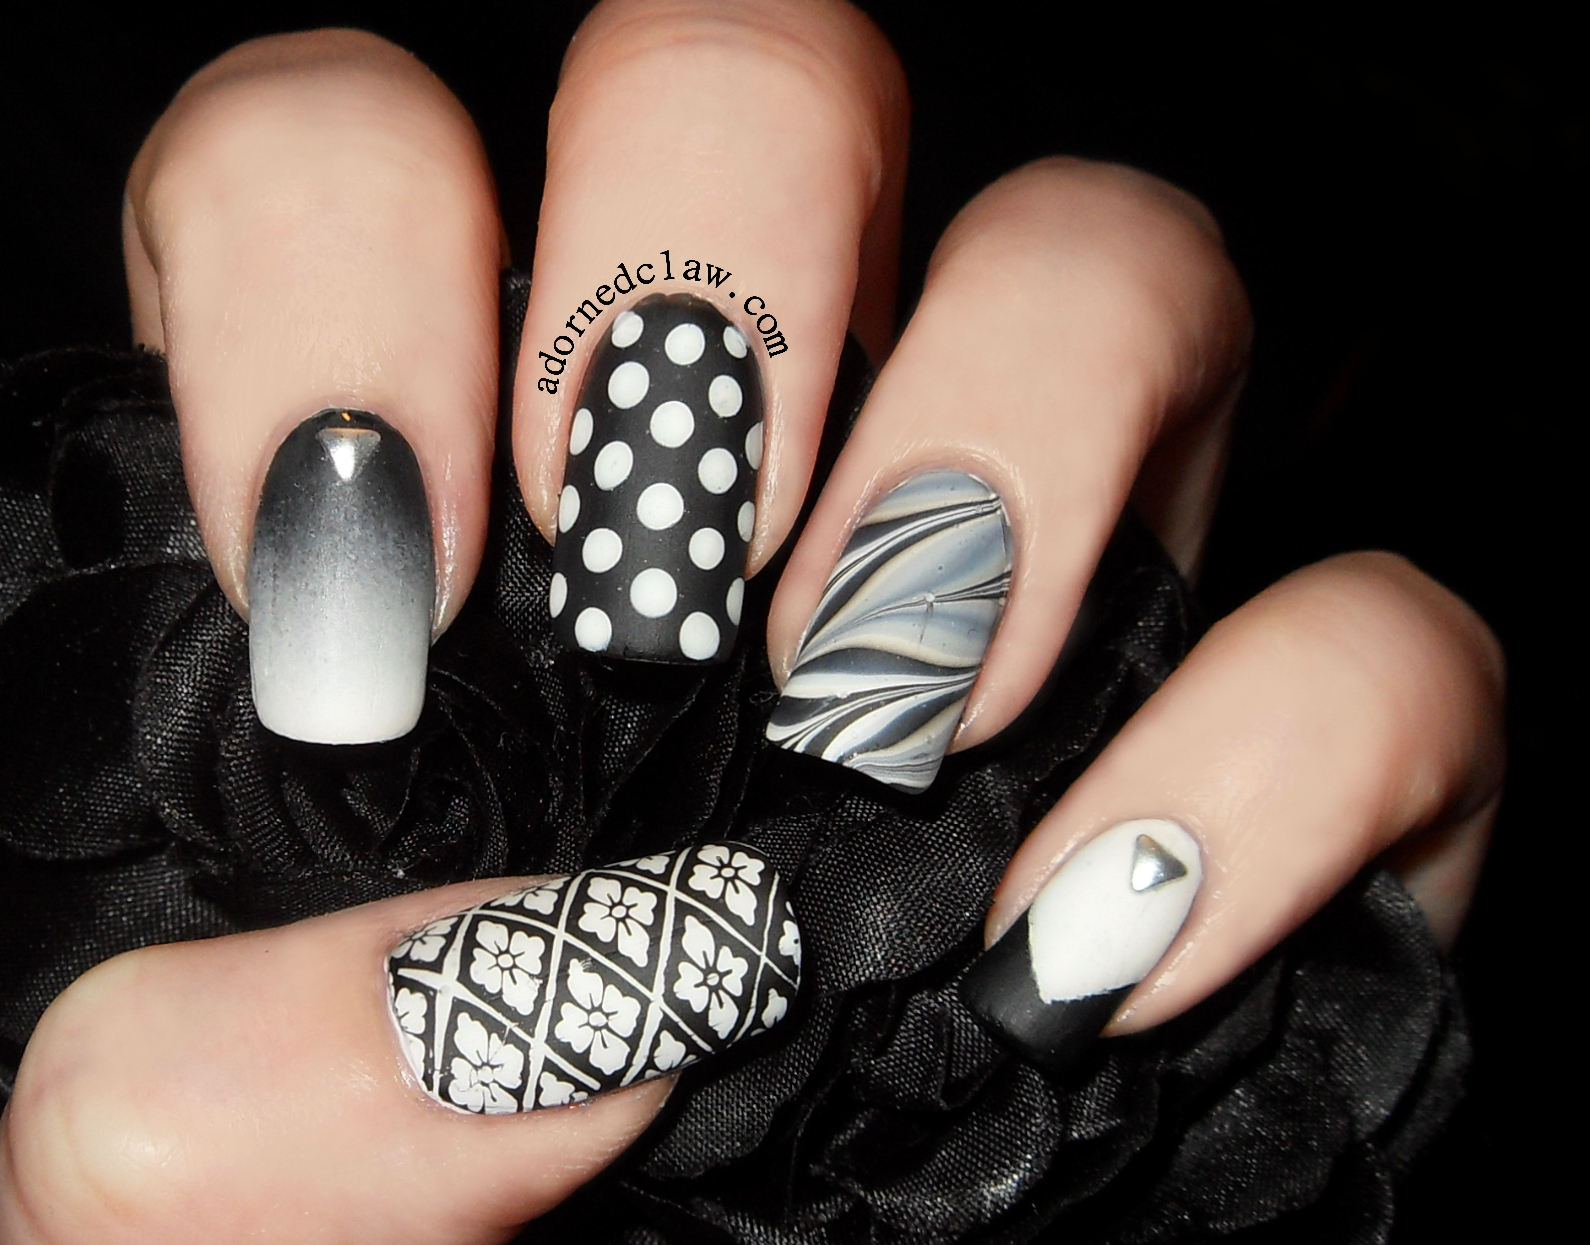 Got Polish Challenge -Skittle! Matte Black and White. | The Adorned Claw